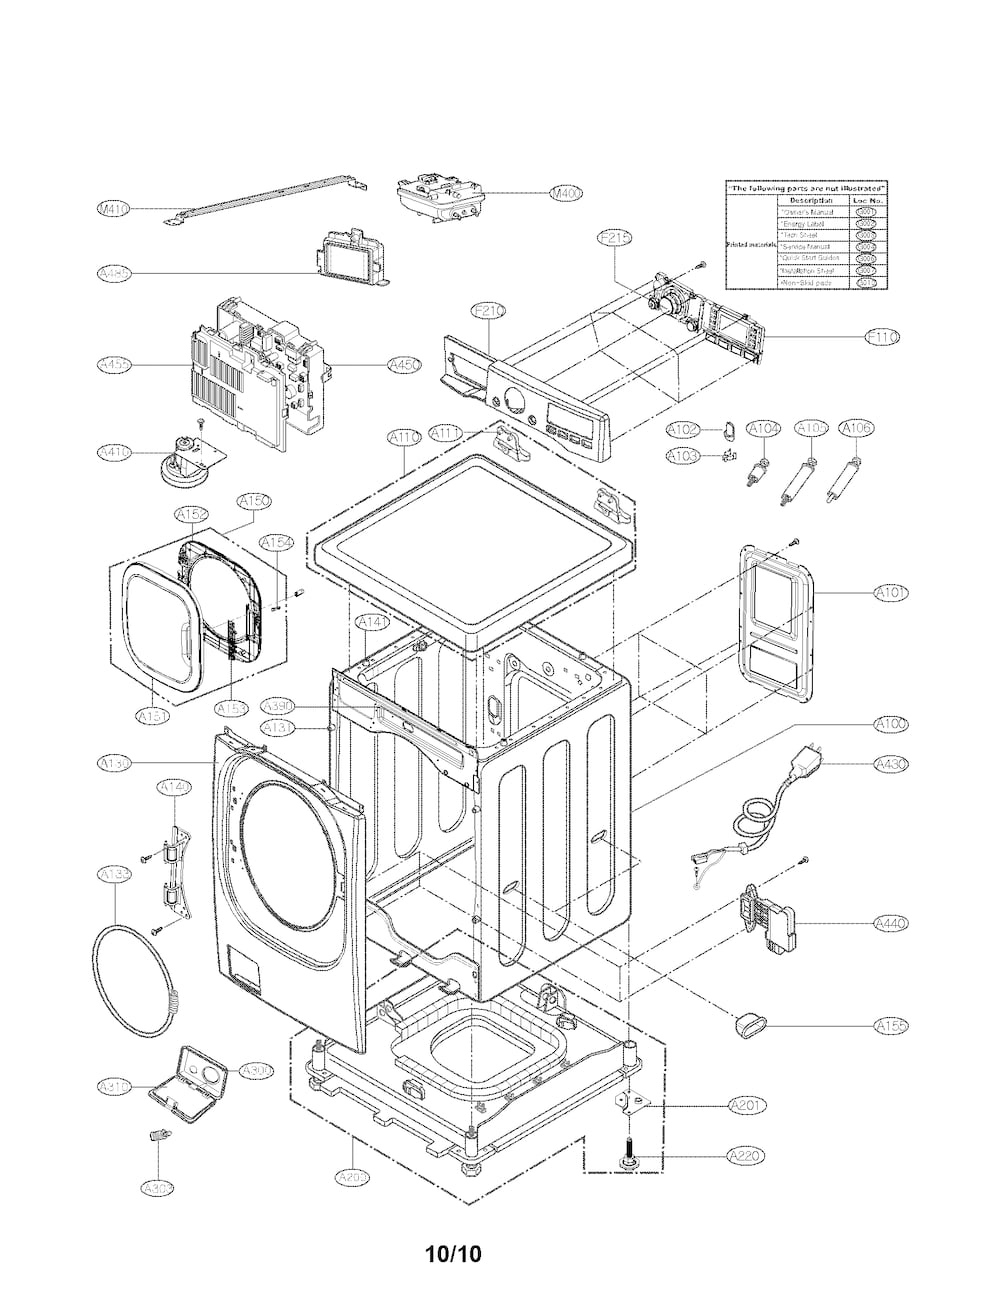 Lg Washer Parts Diagram : 23 Wiring Diagram Images